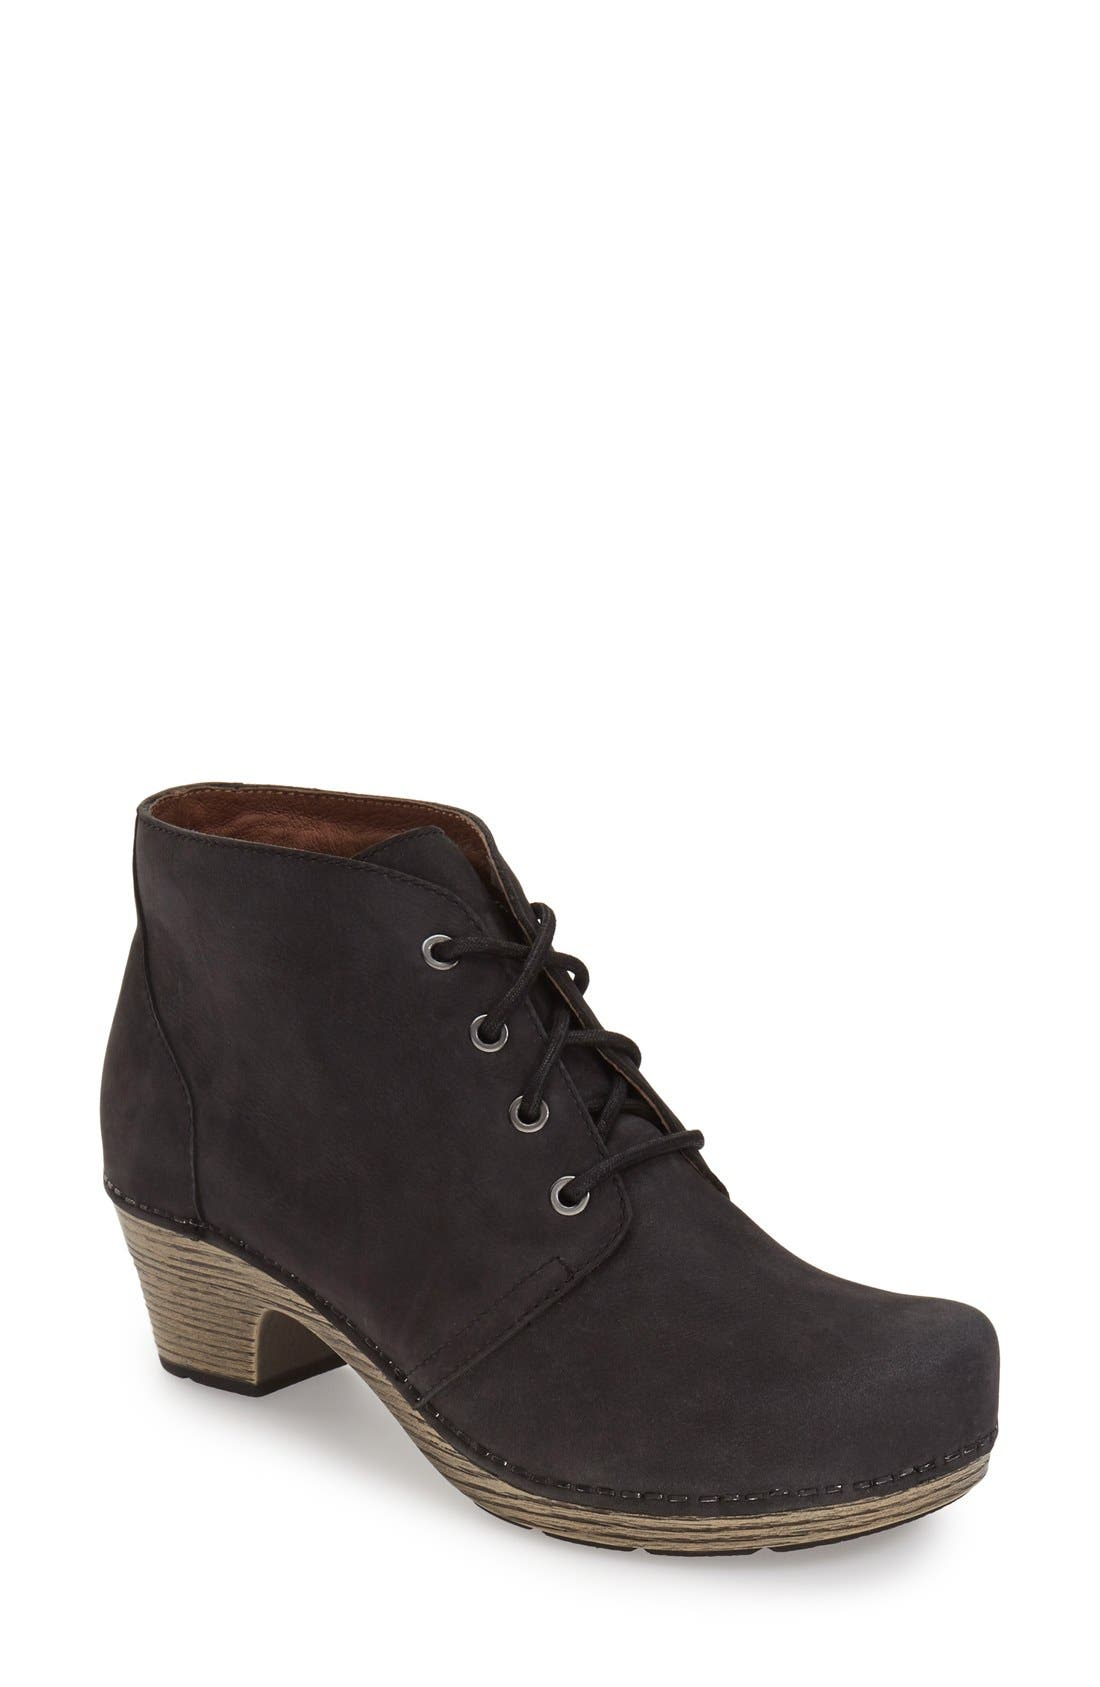 Alternate Image 1 Selected - Dansko 'Meena' Lace-Up Bootie (Women)